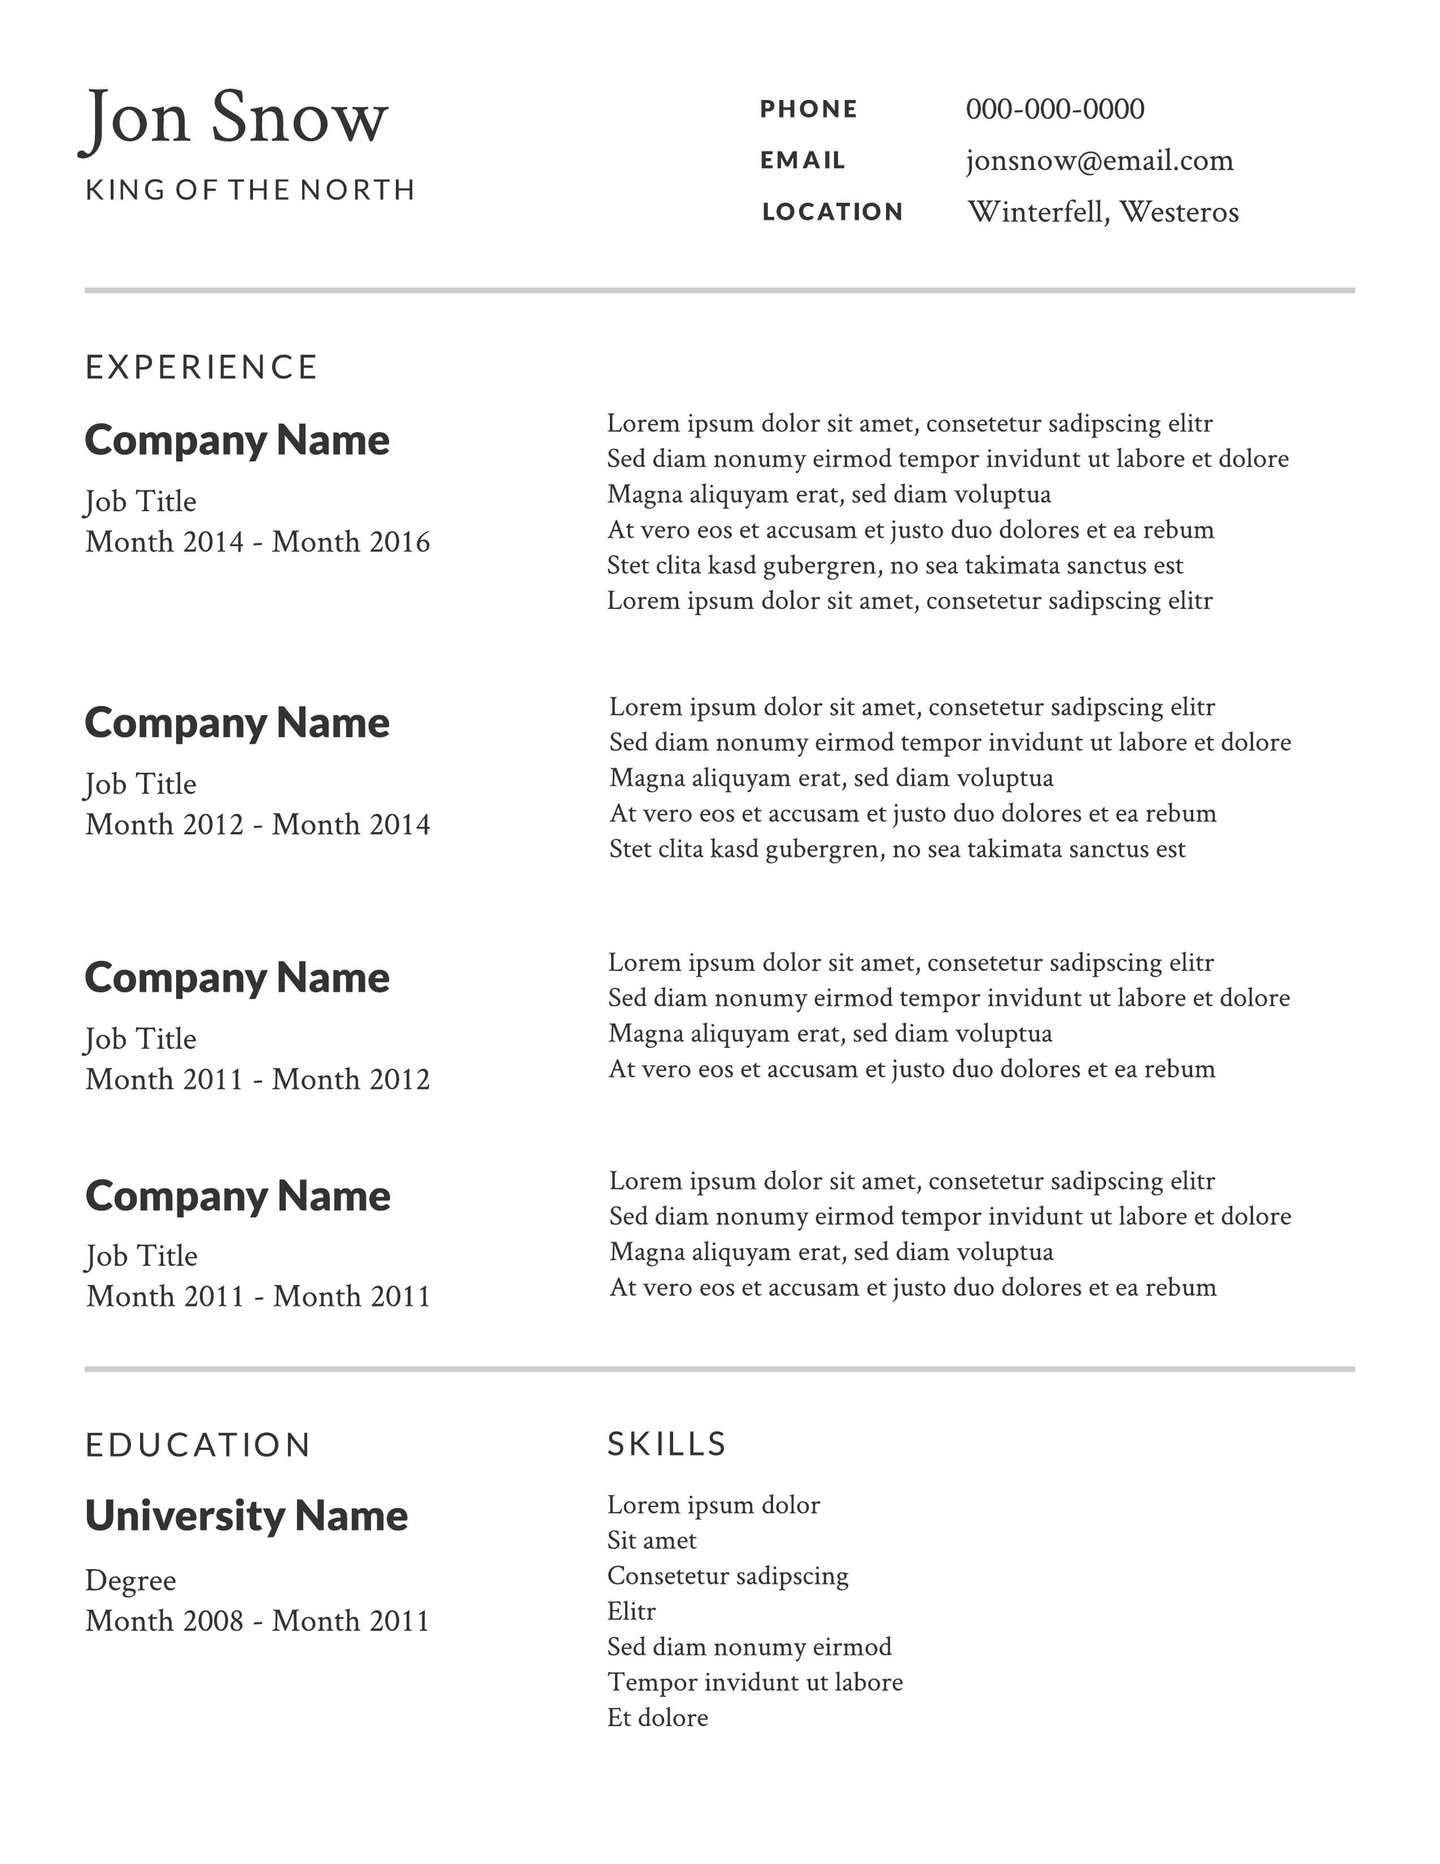 professional resume template - How Should A Professional Resume Look